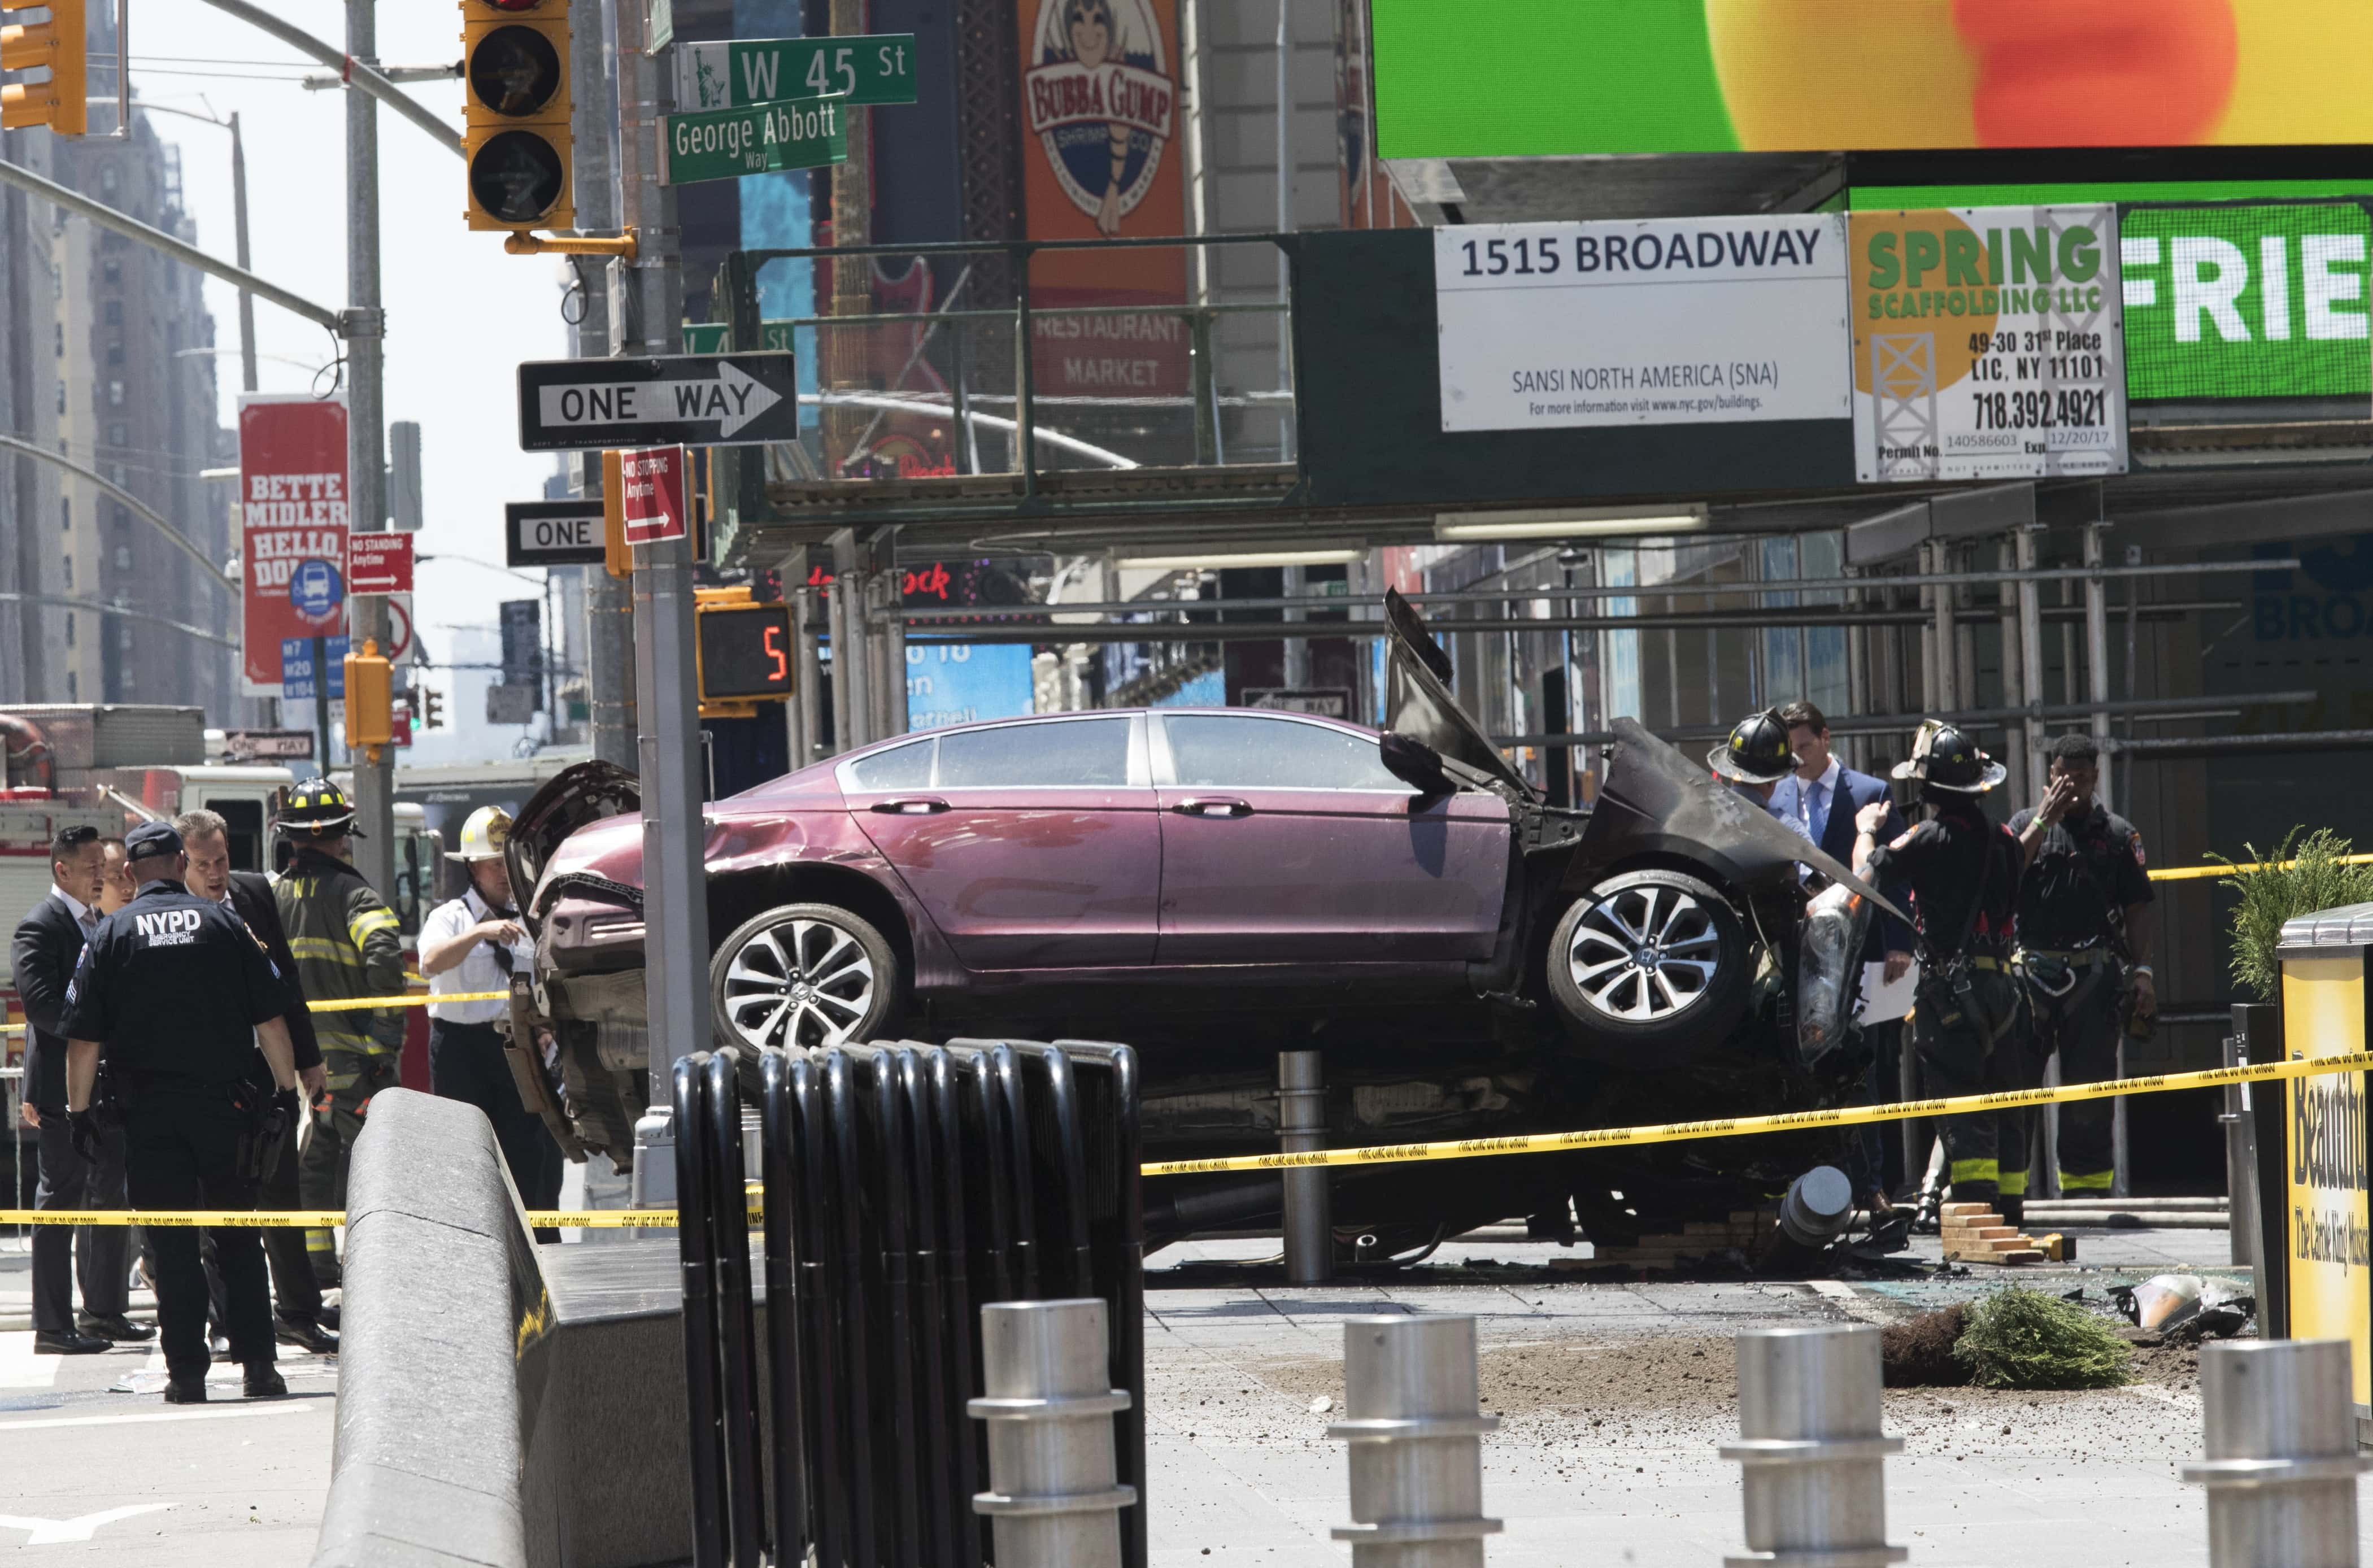 breaking news: car smashes into pedestrians in times square | ksro